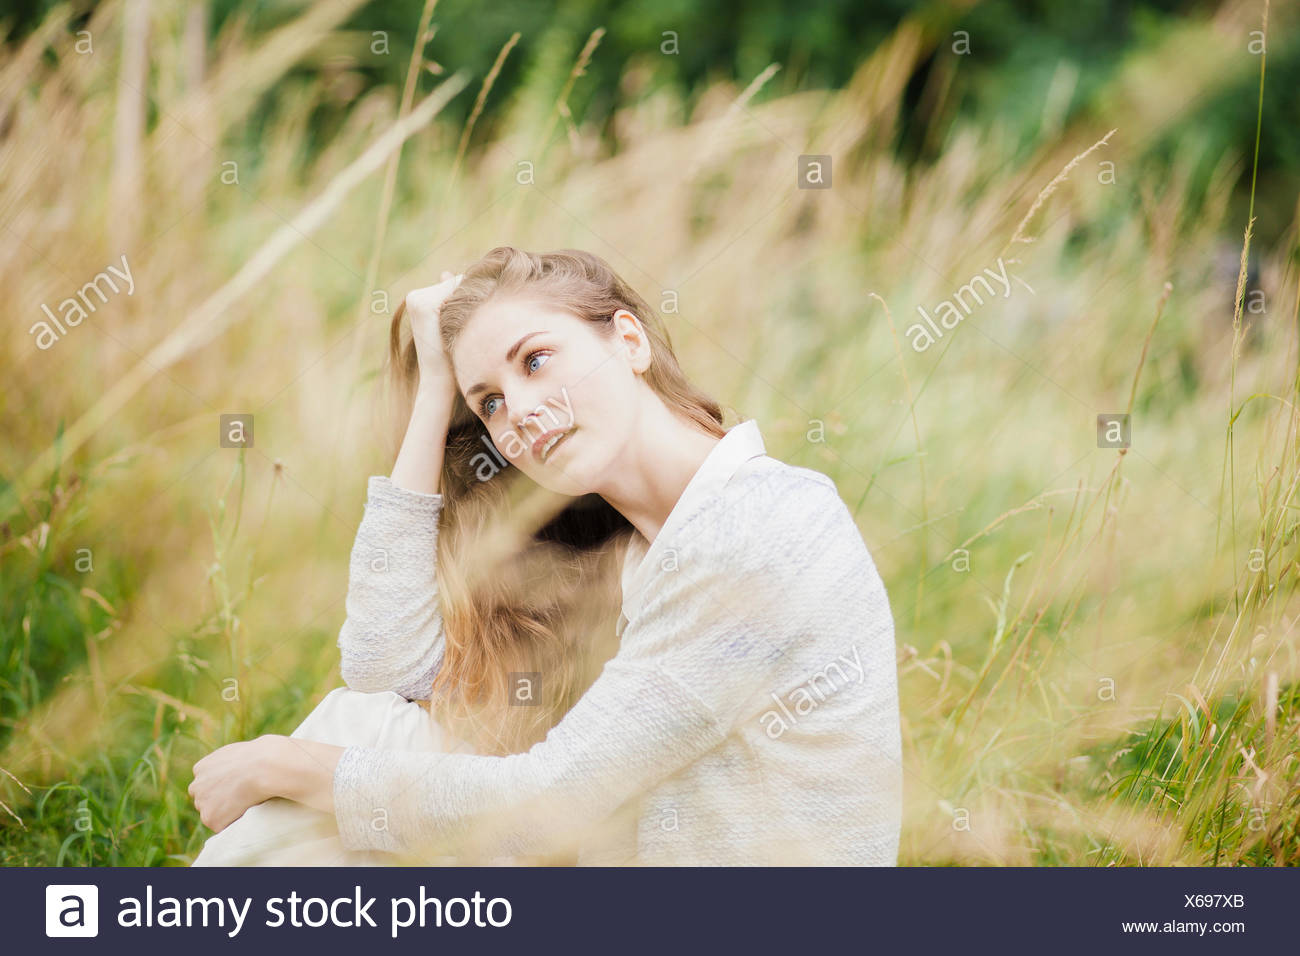 Young woman sitting in long grass with hand in hair - Stock Image